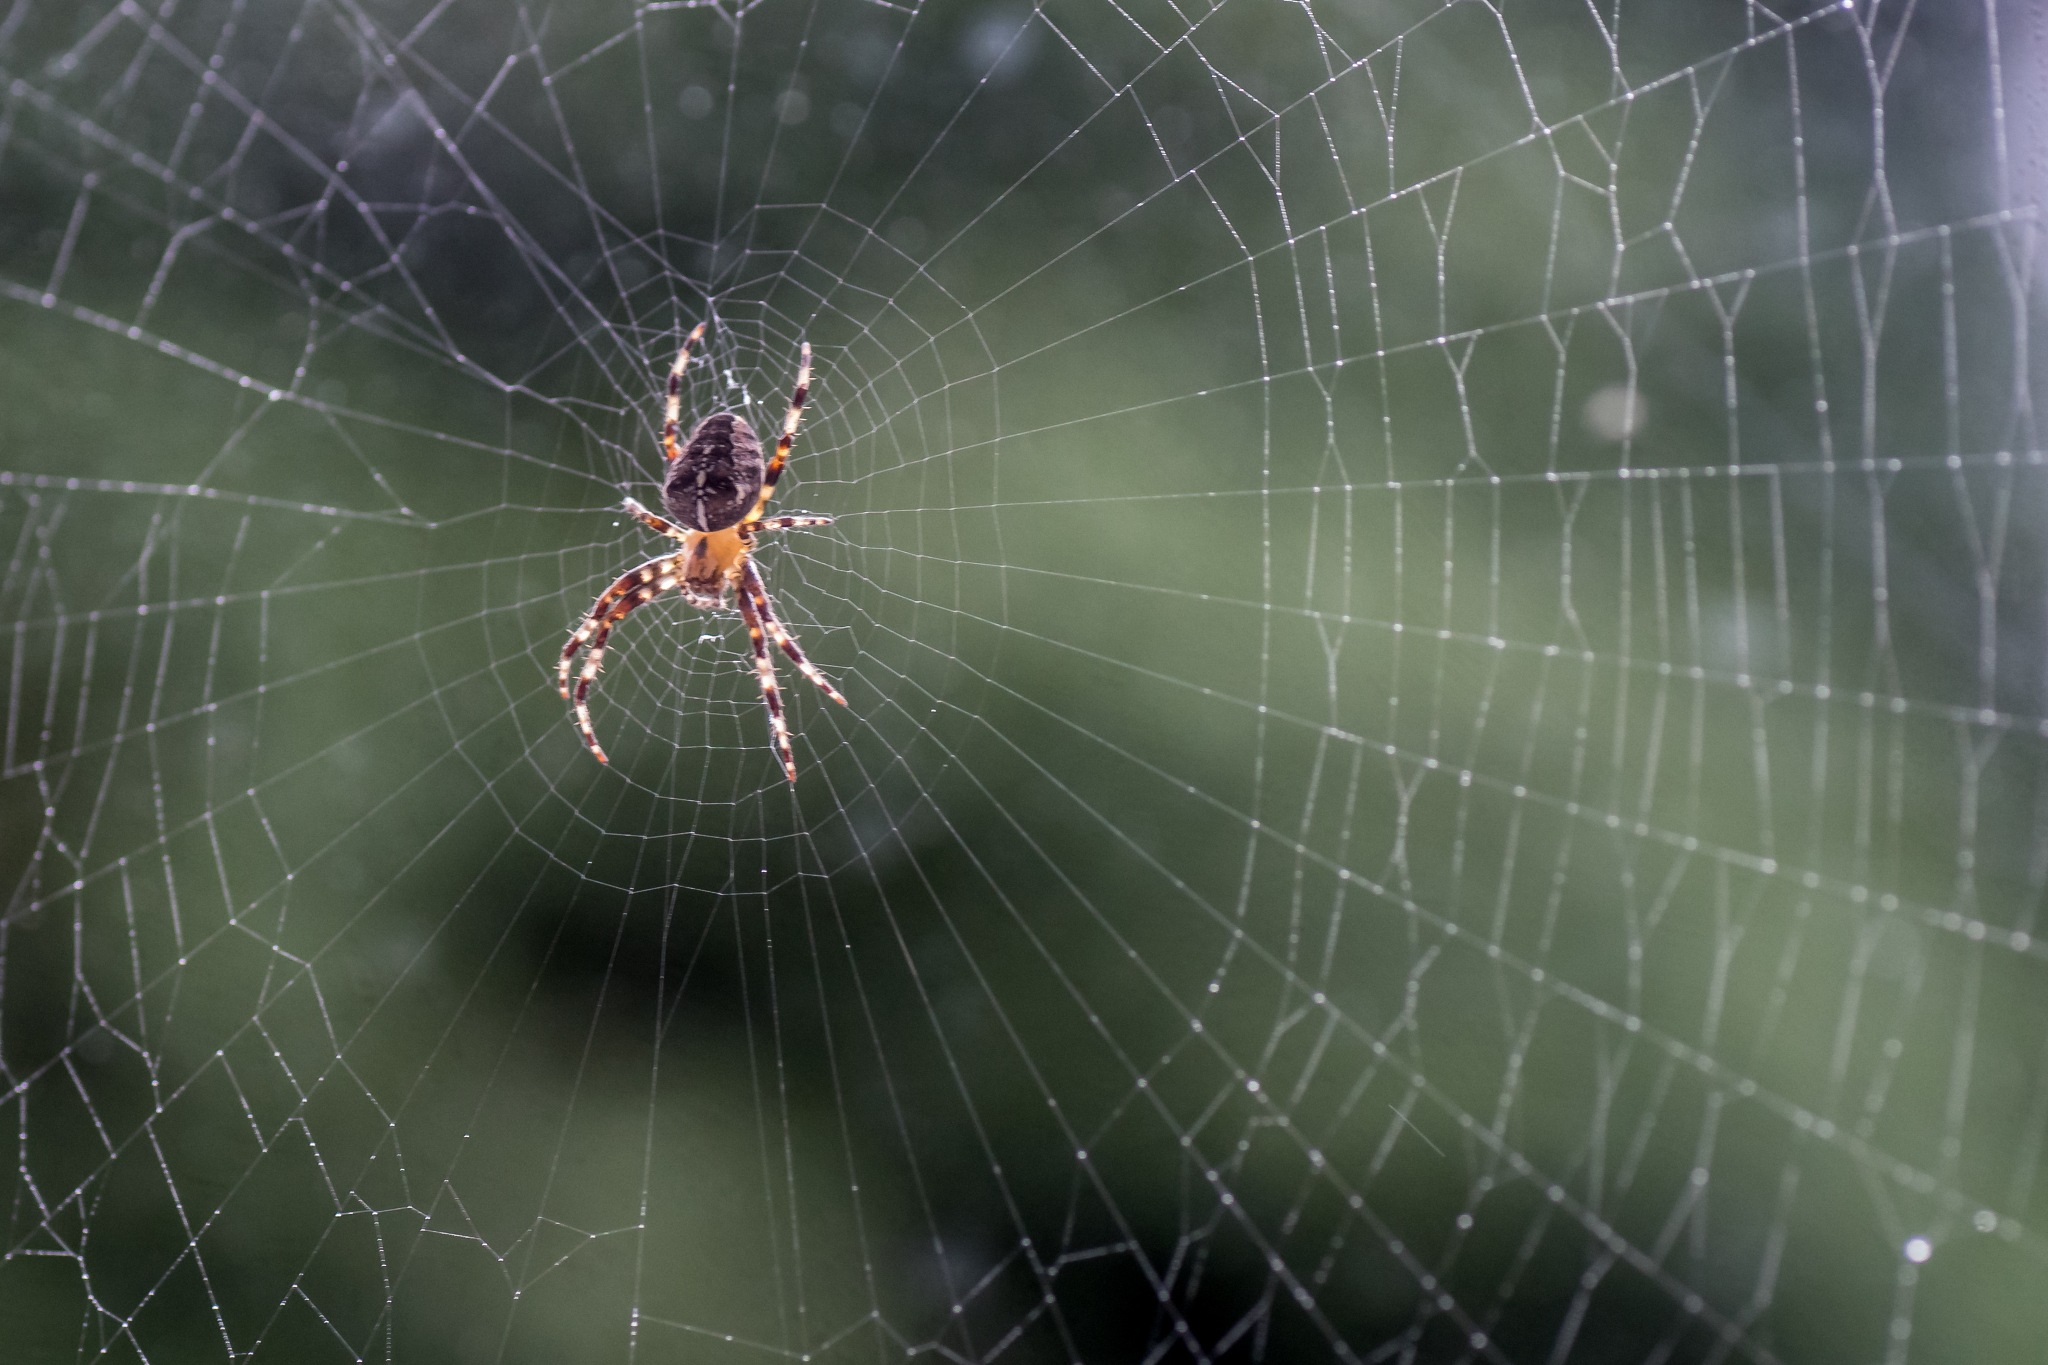 Incey Wincey Spider by mg1631